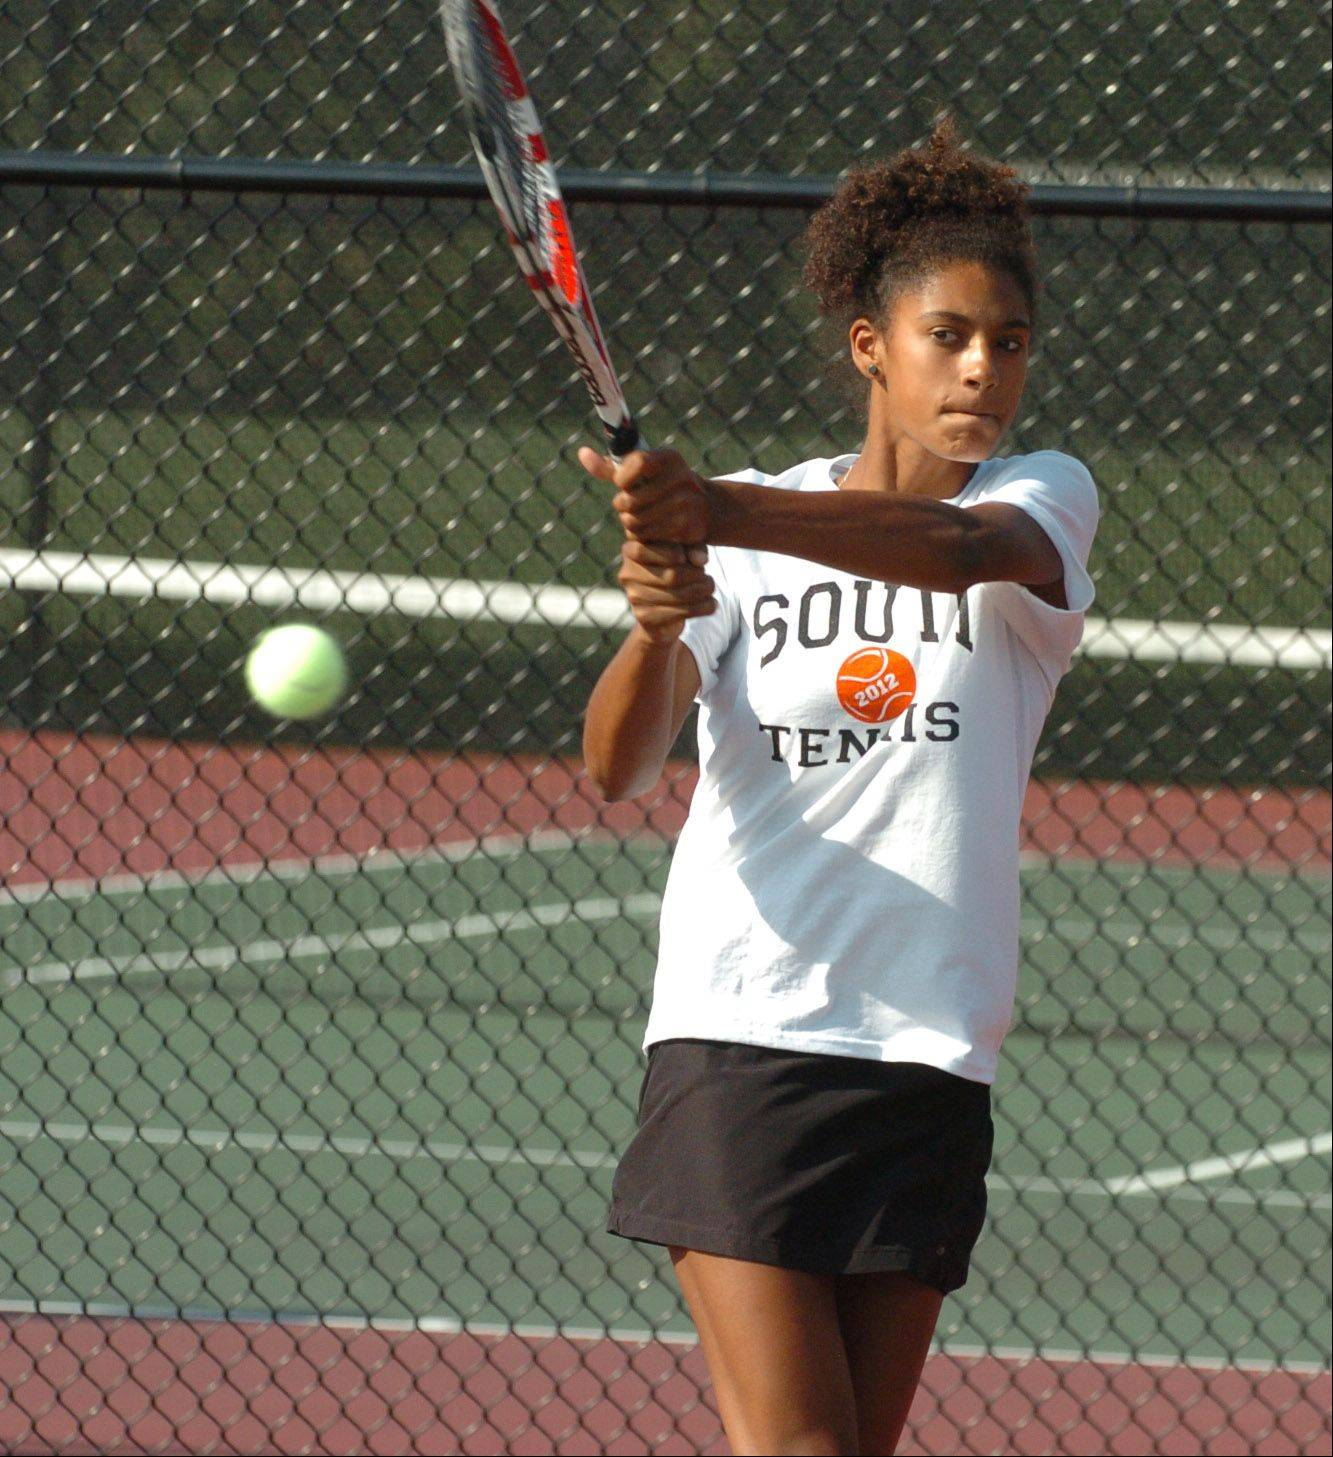 WW South junior Keisha Clousing is mixing a USTA tournament schedule with her high school schedule.